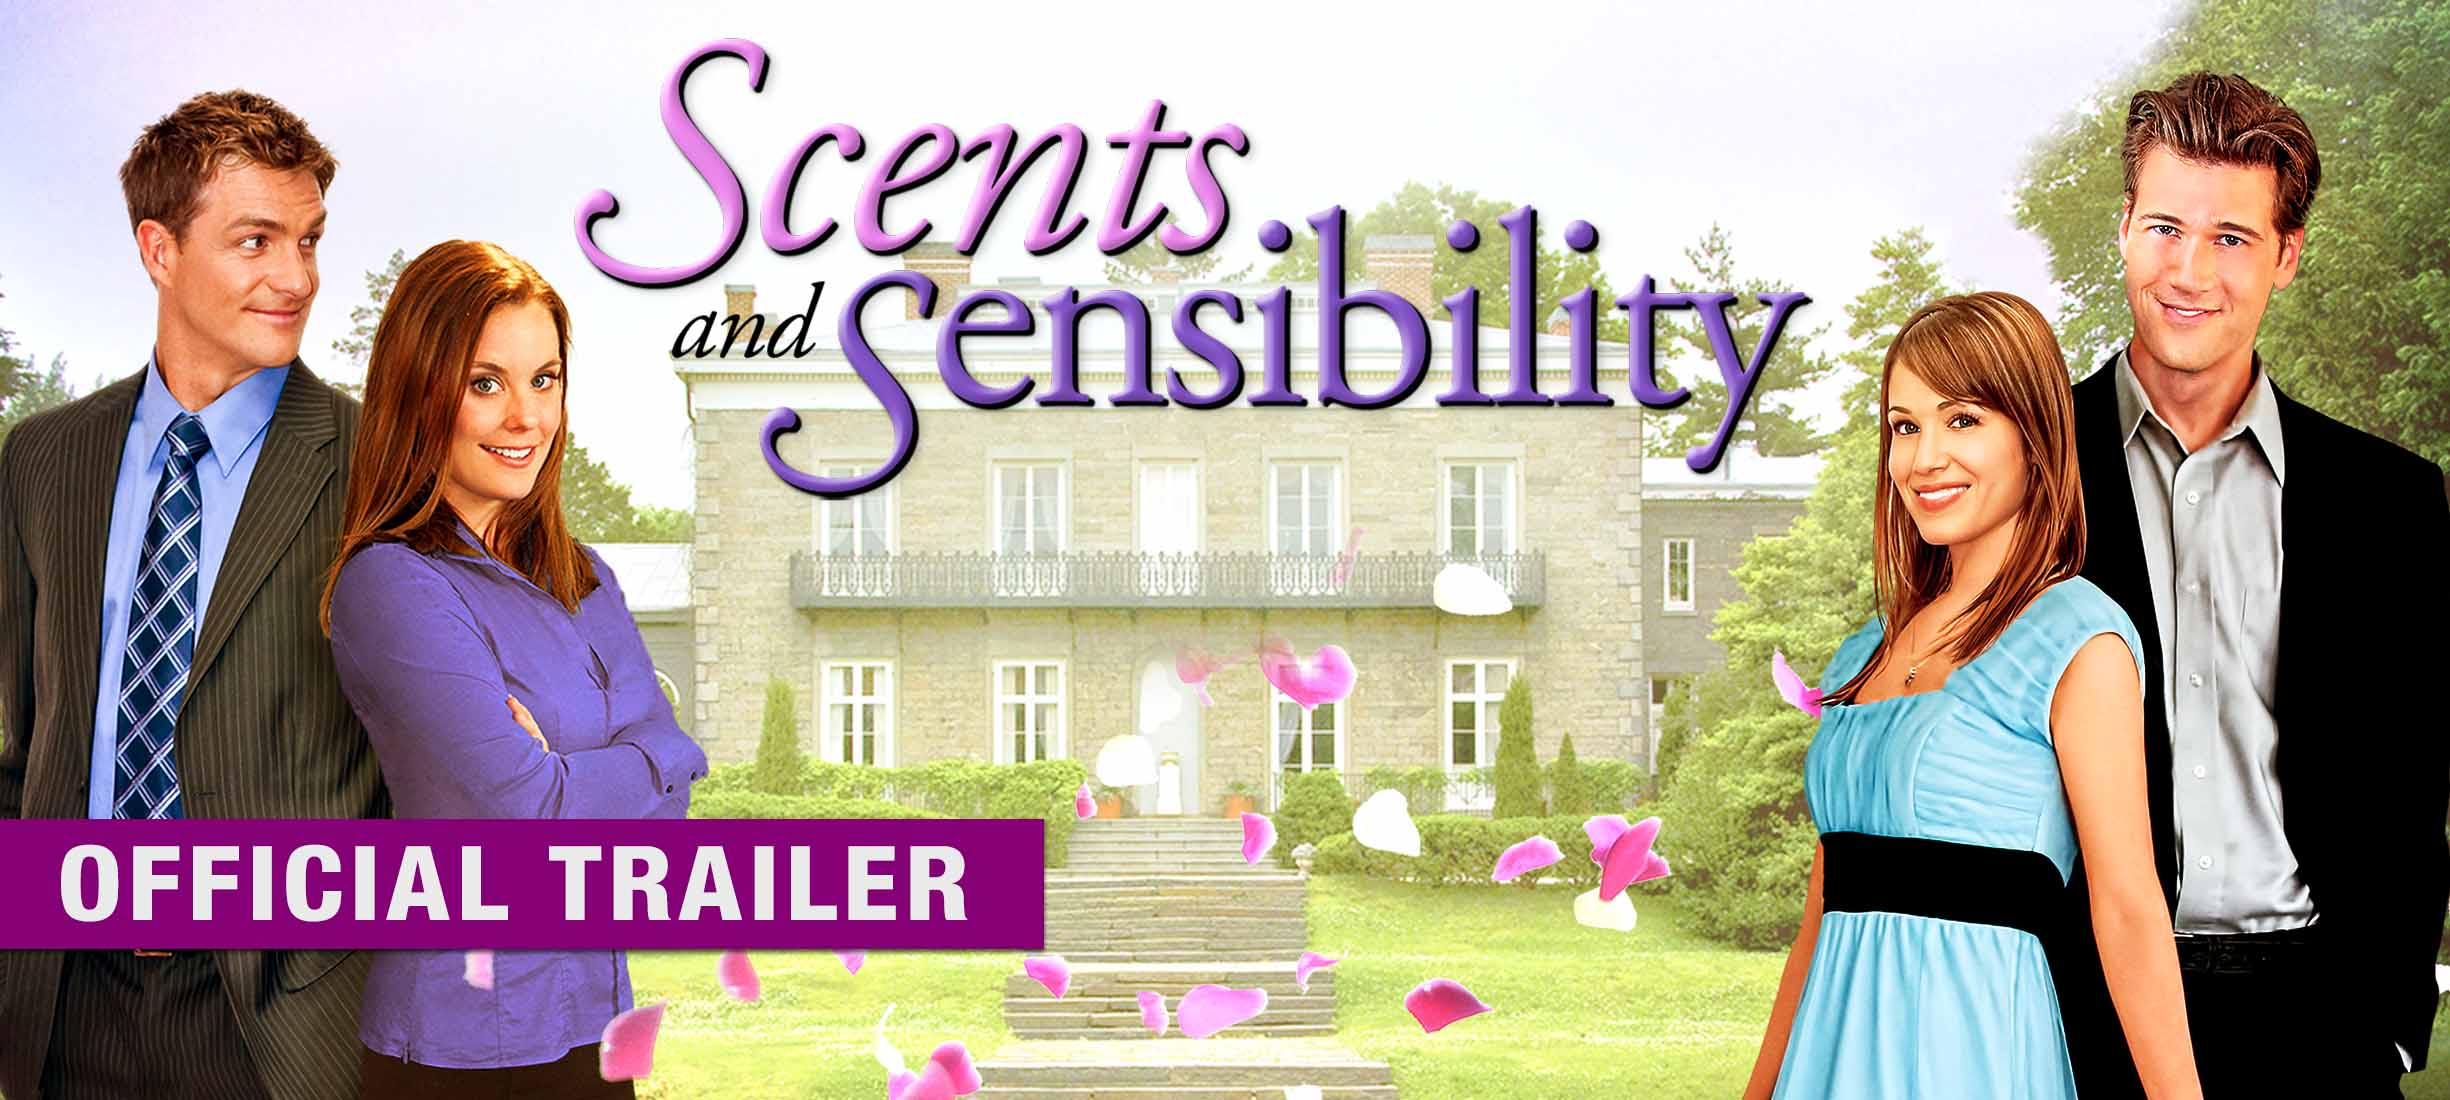 Scents and Sensibility: Trailer